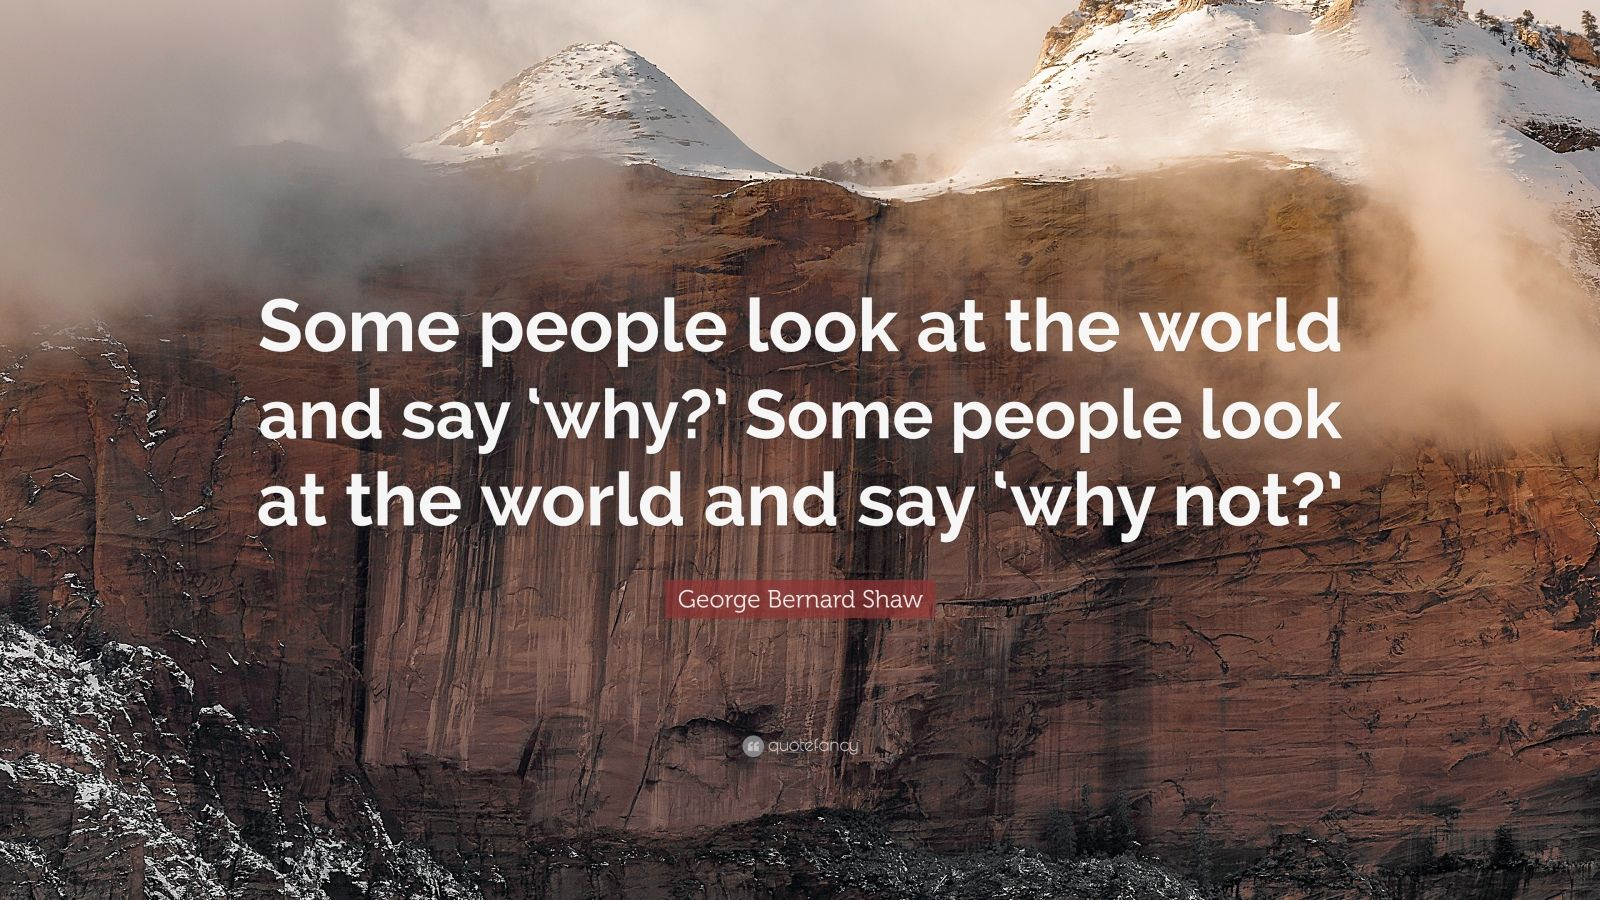 """George Bernard Shaw Quote: """"Some people look at the world and say 'why?' Some people look at the world and say 'why not?'"""""""